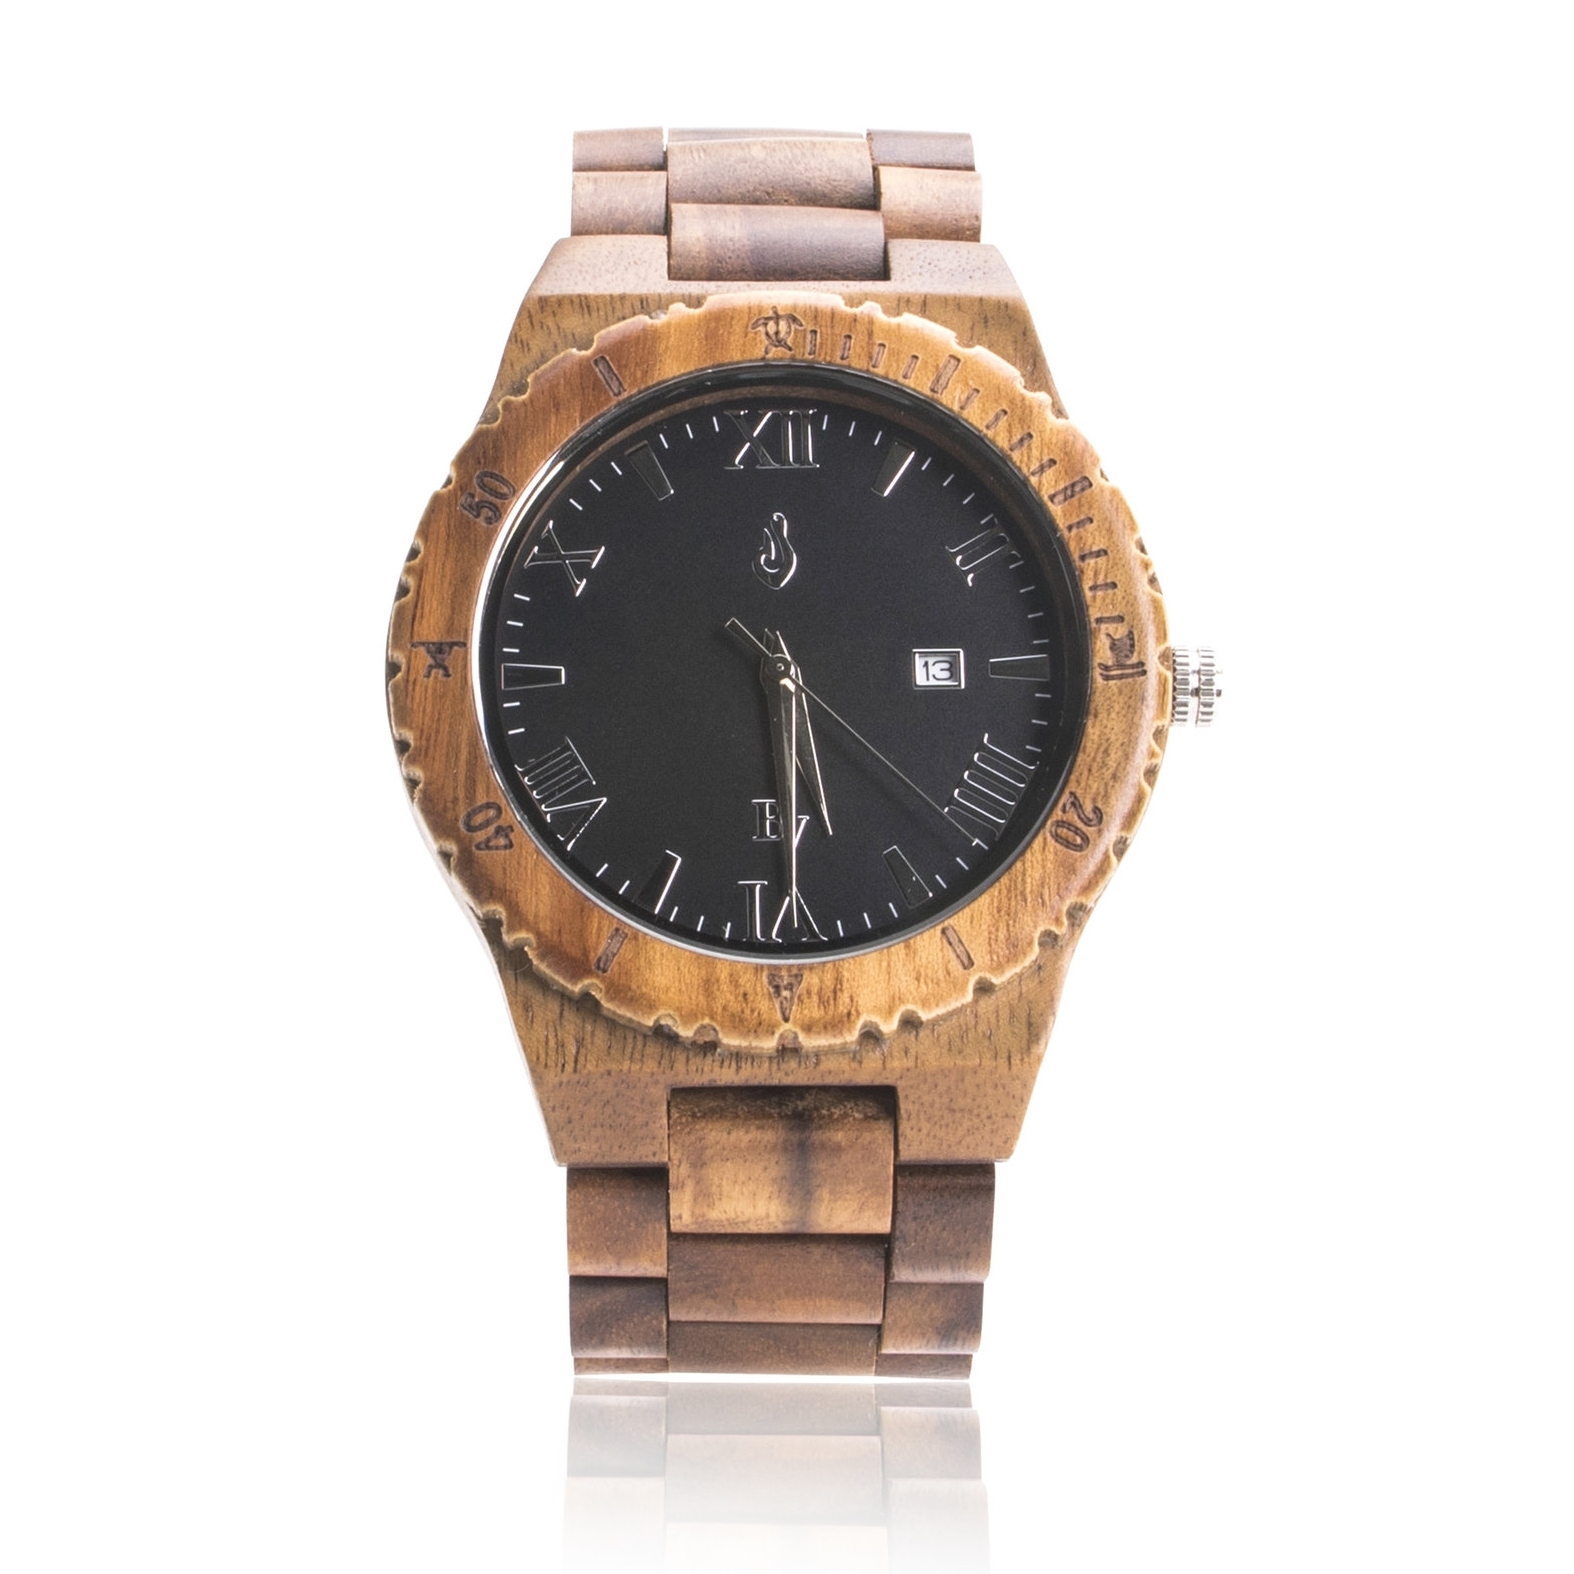 Koa wood watches for men